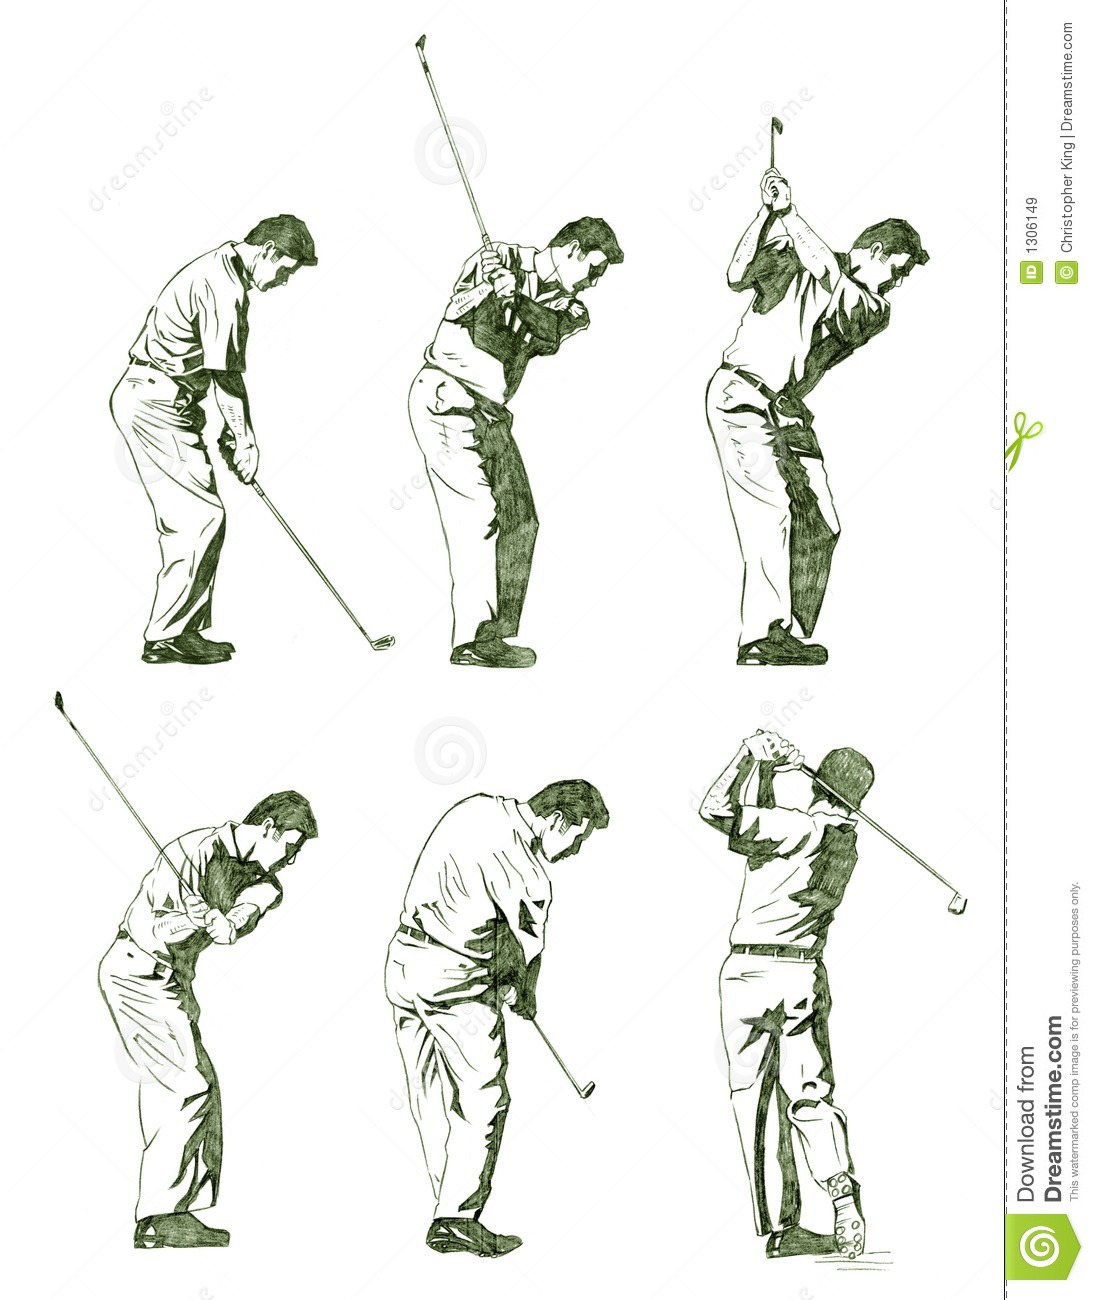 Golf Player Illustration Shown In Stages Stock Vector